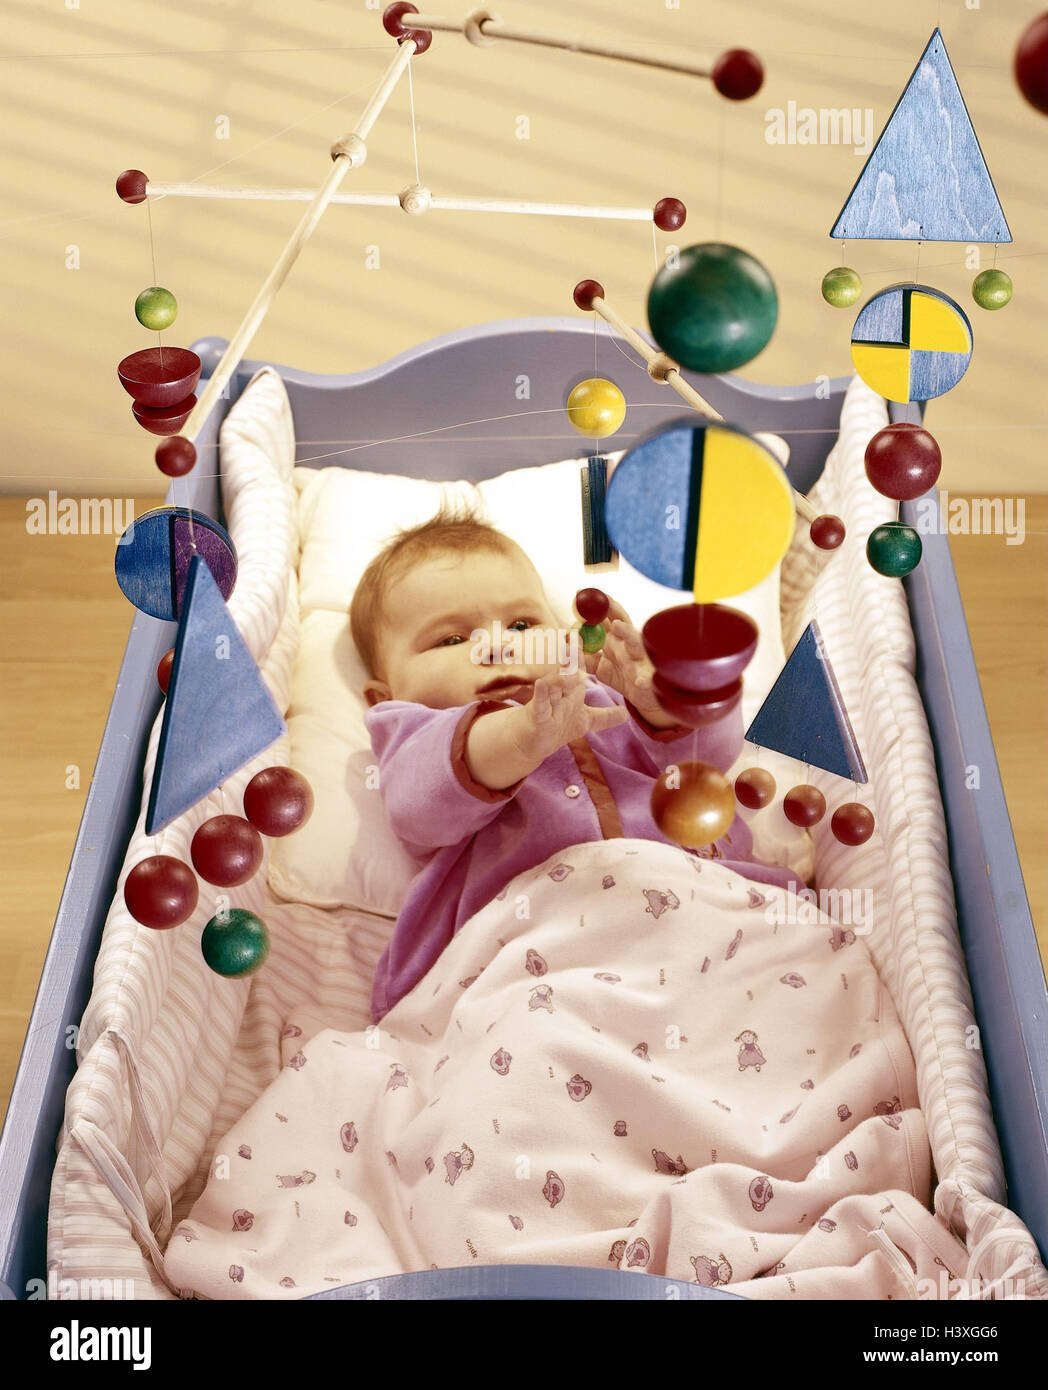 Cot, baby, mobile, inside, bed, child cradle, cradle, child, lie, child mobile, toys, toys, activity, from above Stock Photo